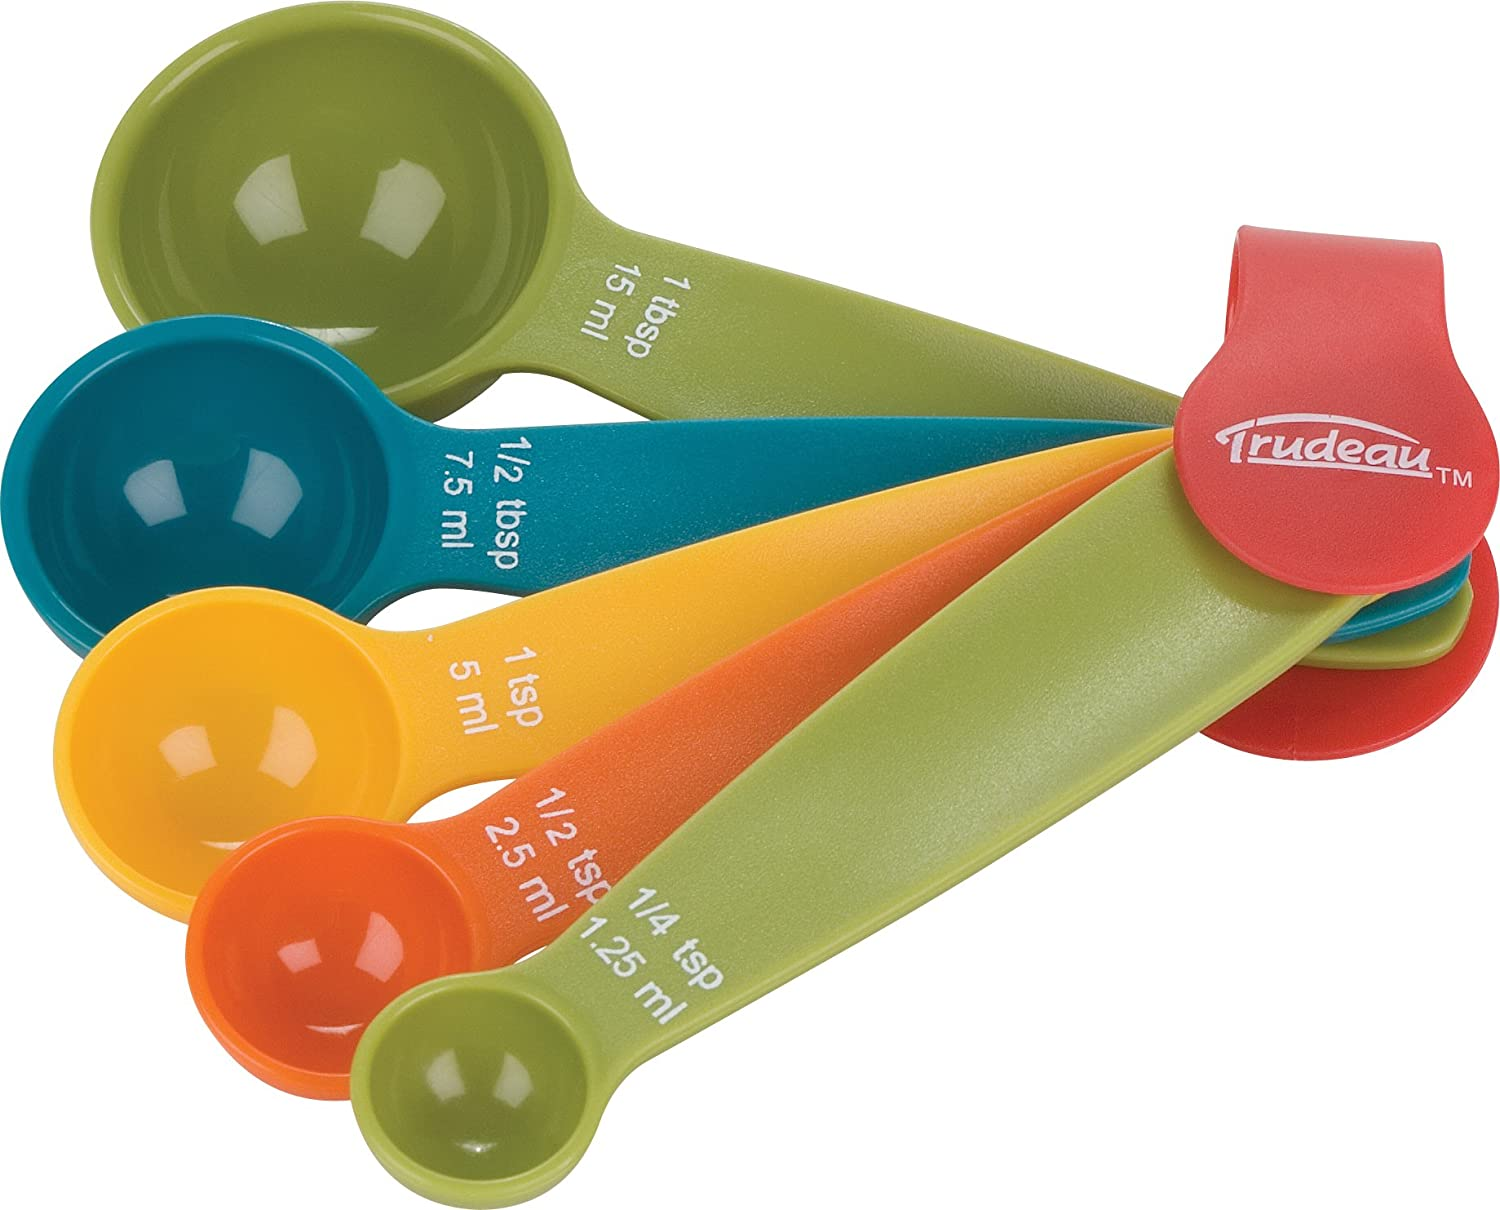 Decorative Measuring Spoons And Cups Amazoncom Trudeau Measuring Spoons Set Of 5 Kitchen Dining